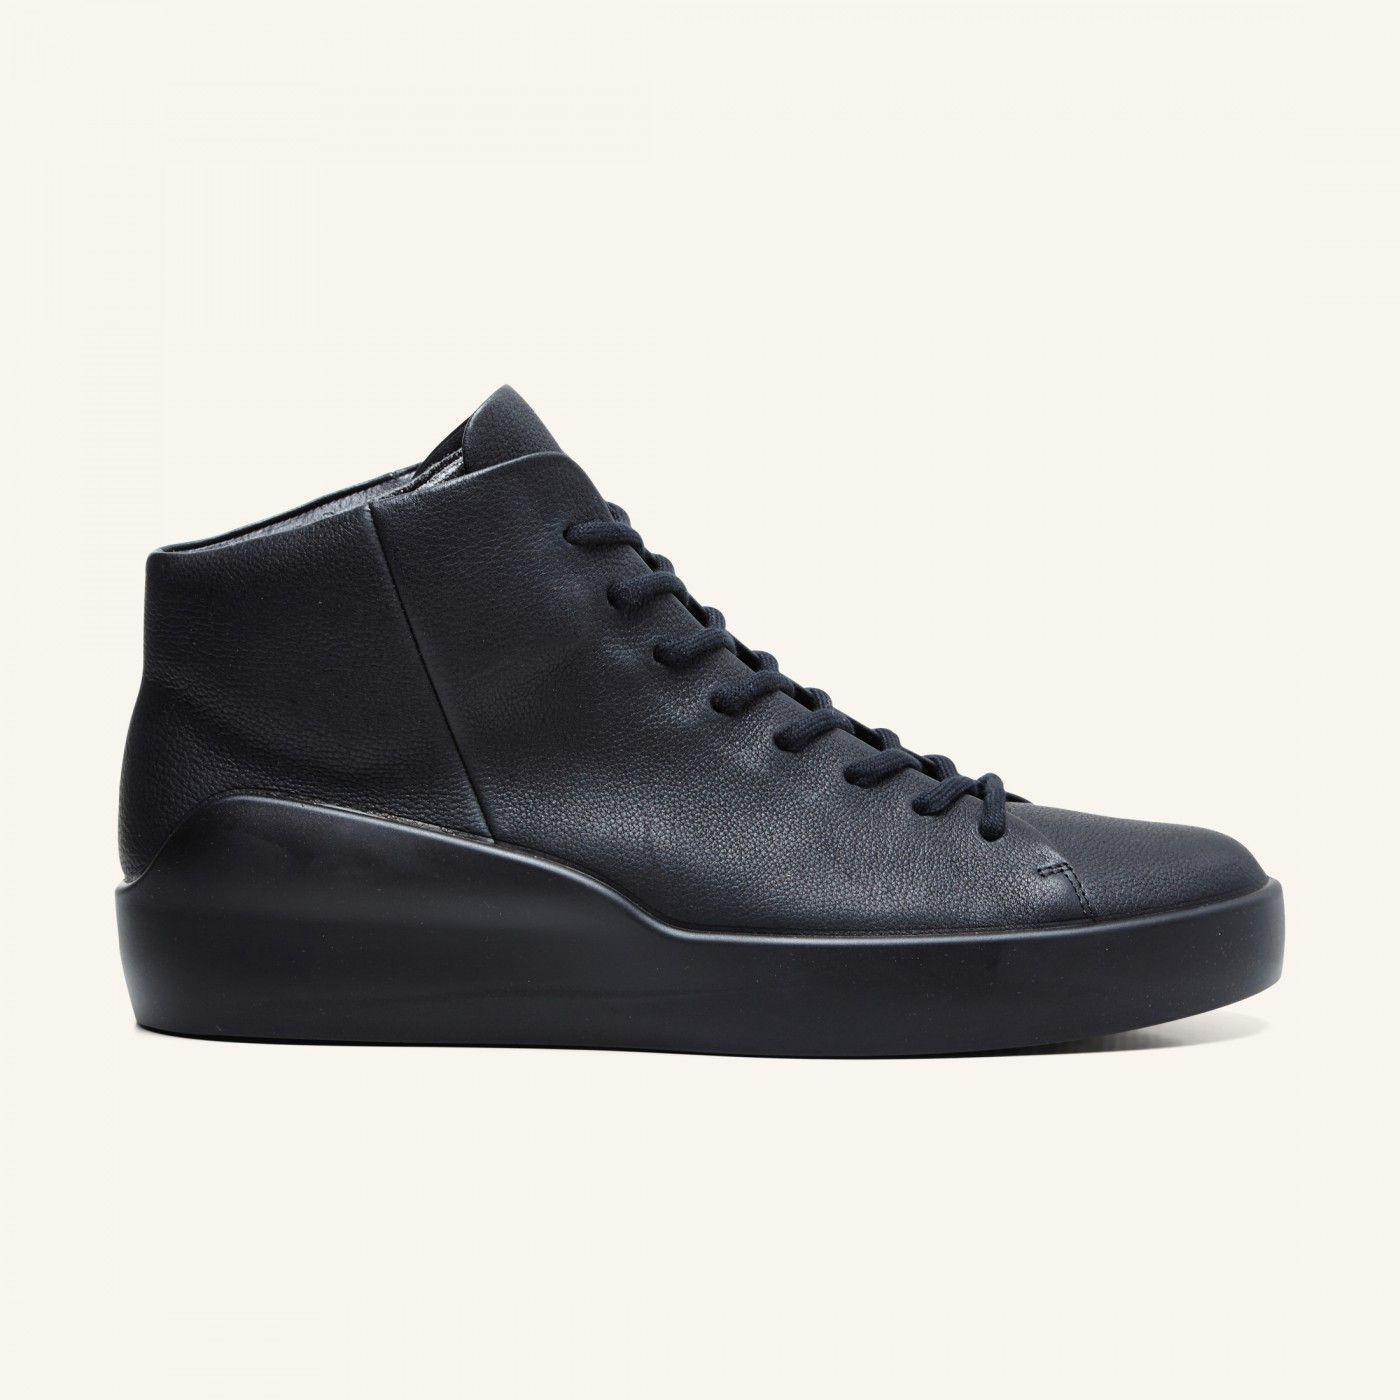 Leather sneakers · Ecco x The Last Conspiracy - Asger - black/black